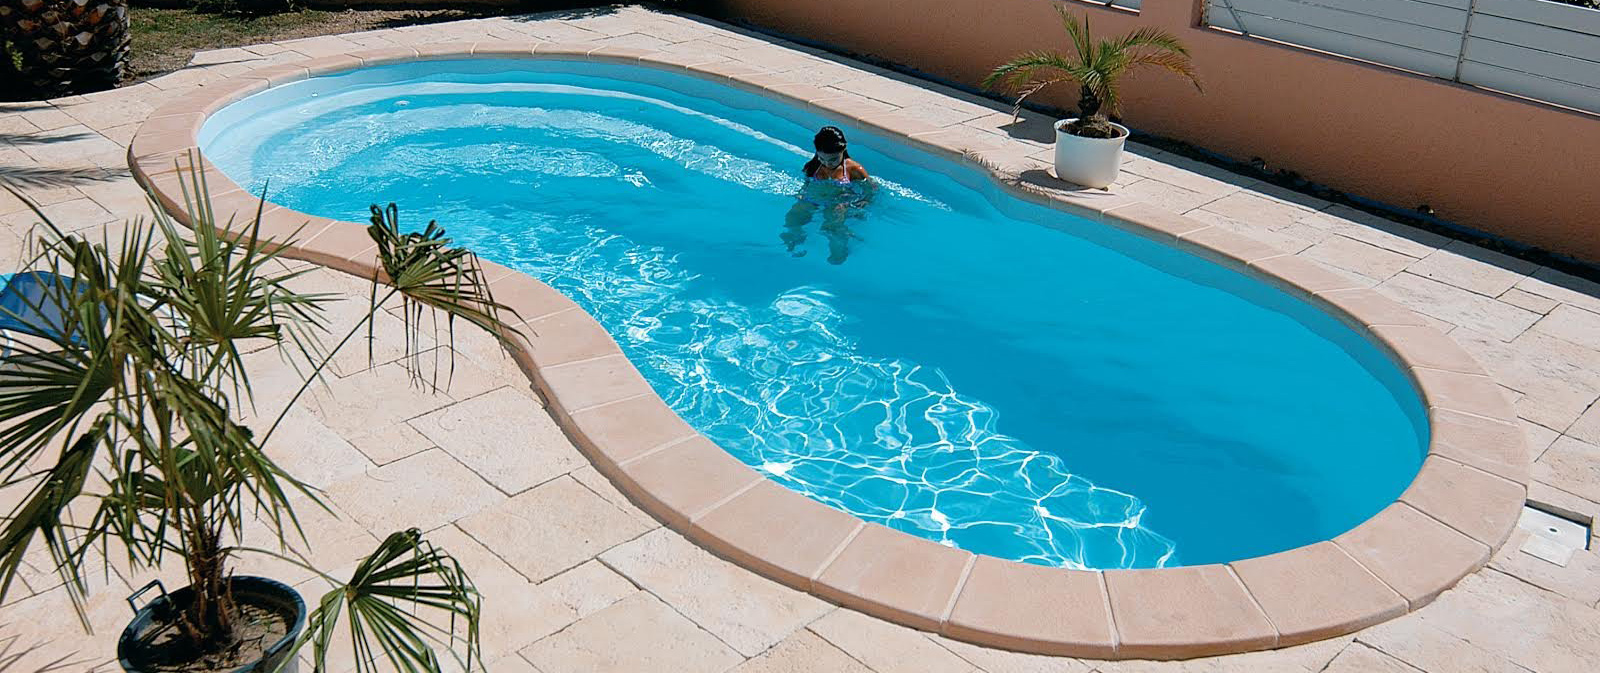 renovation-entretien-piscine-vendee